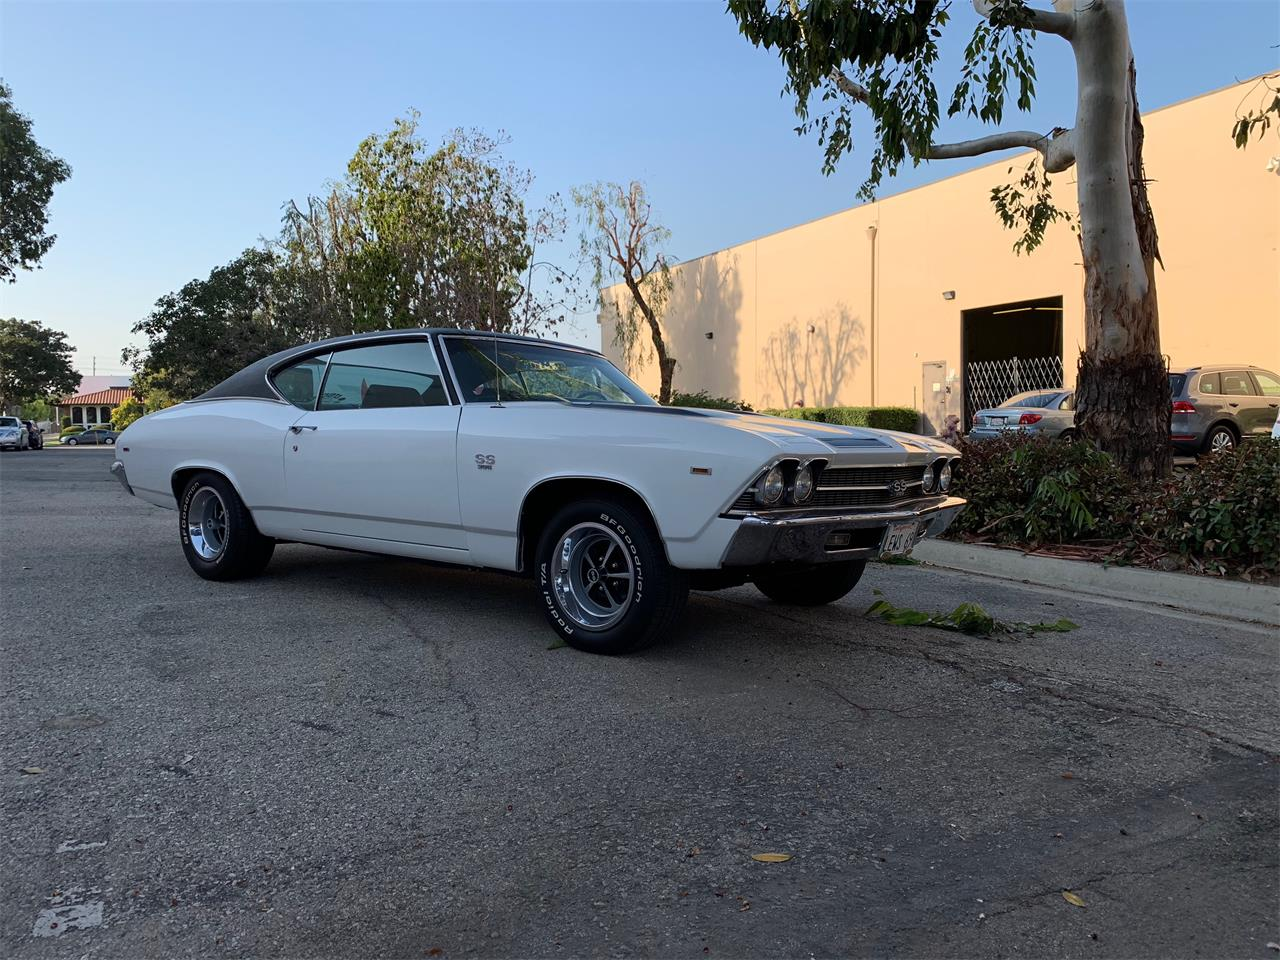 1969 Chevrolet Chevelle SS for sale in Irvine, CA – photo 4